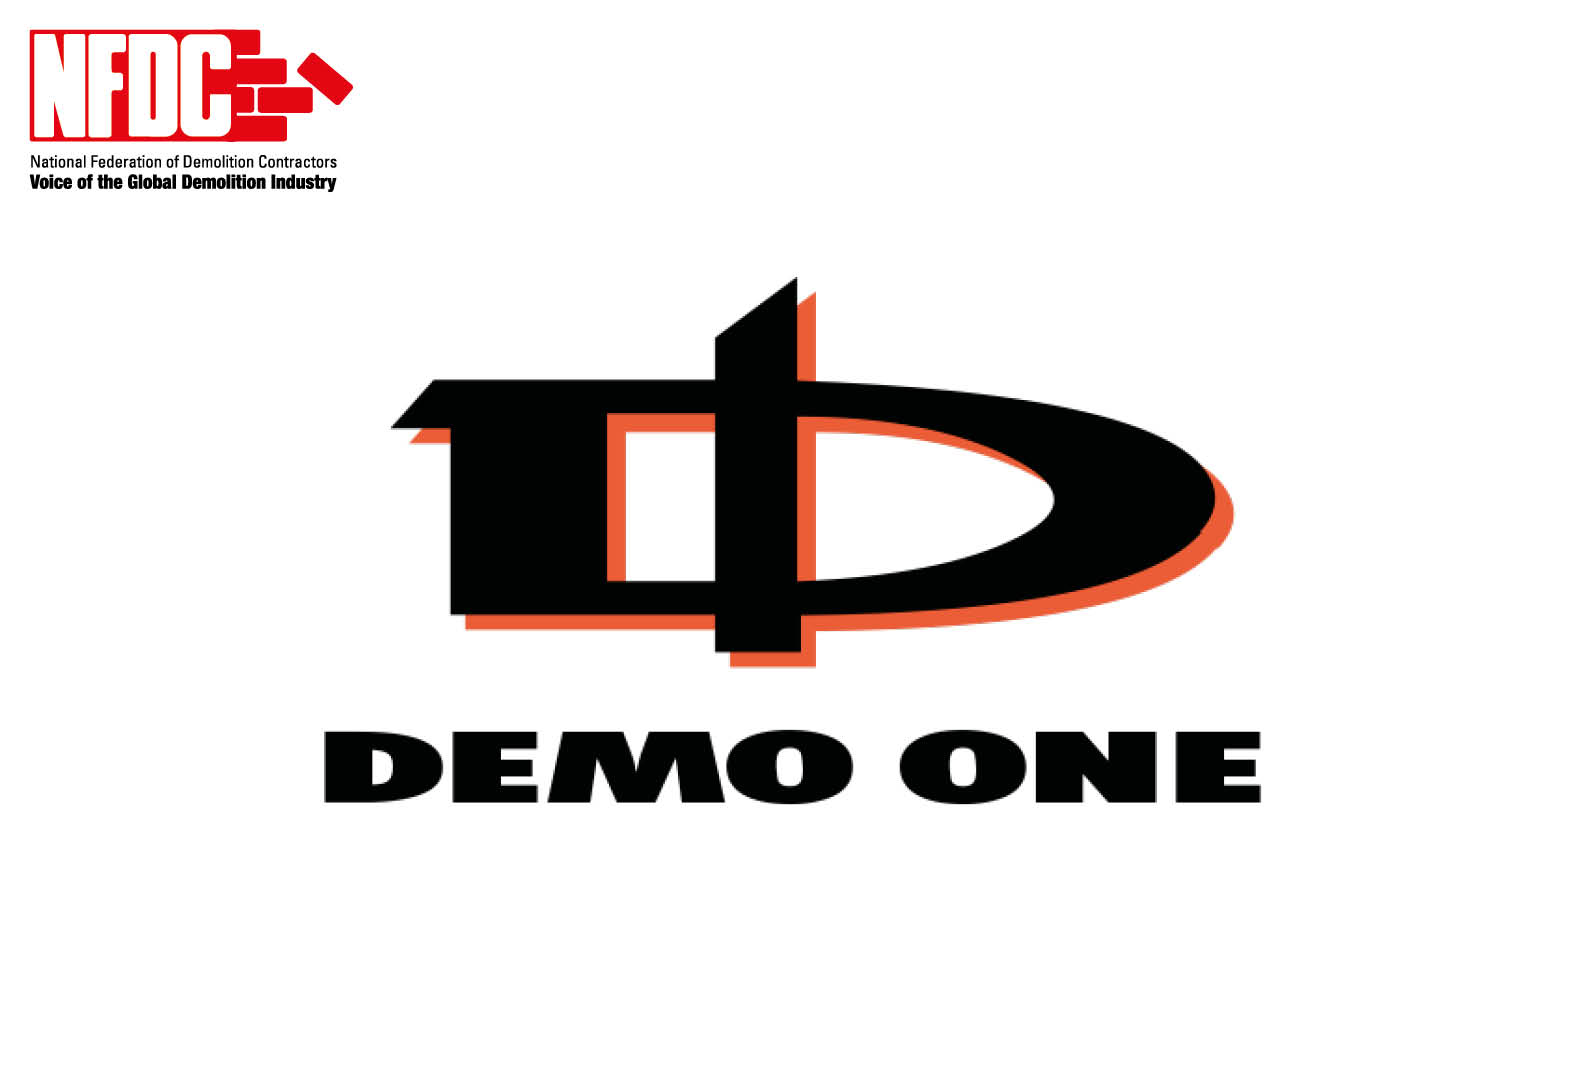 Demo One